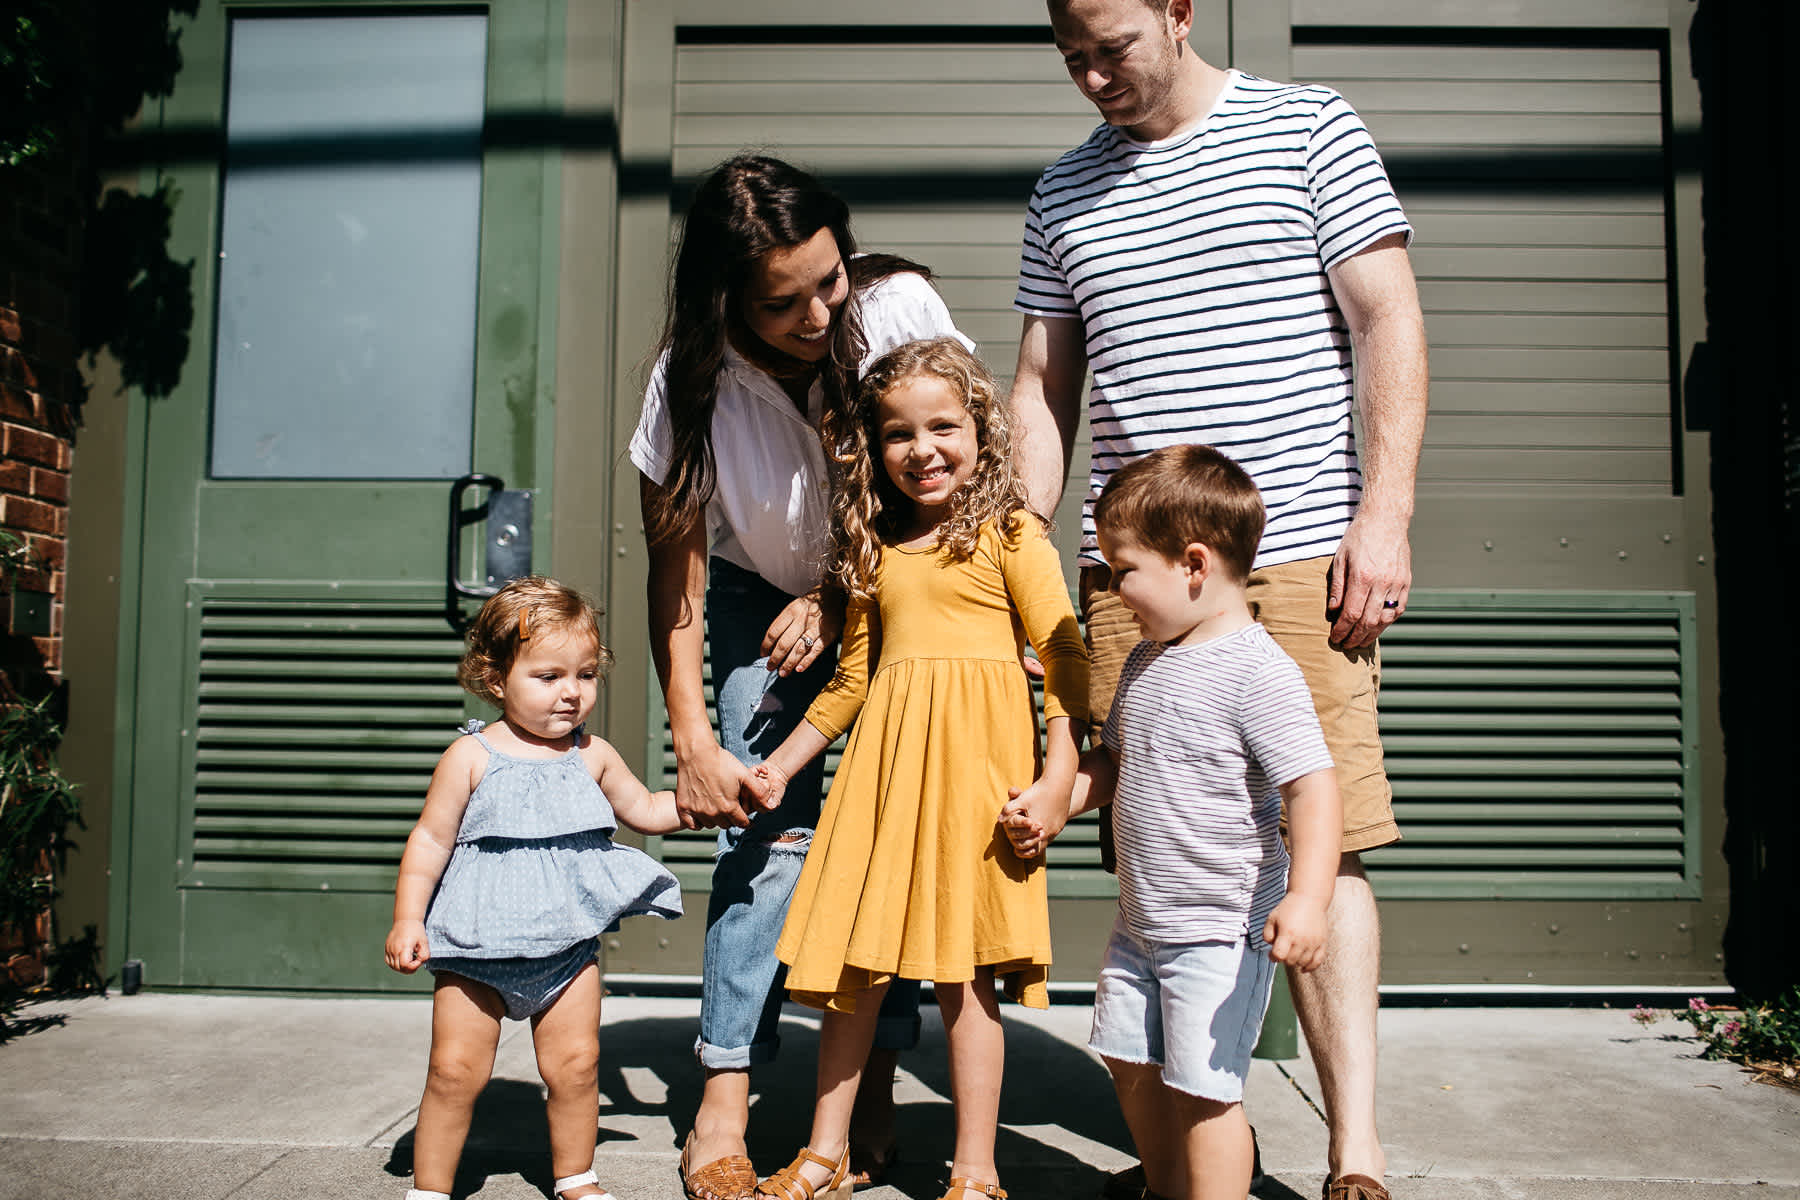 east-bay-san-francisco-urban-family-lifestyle-session-8